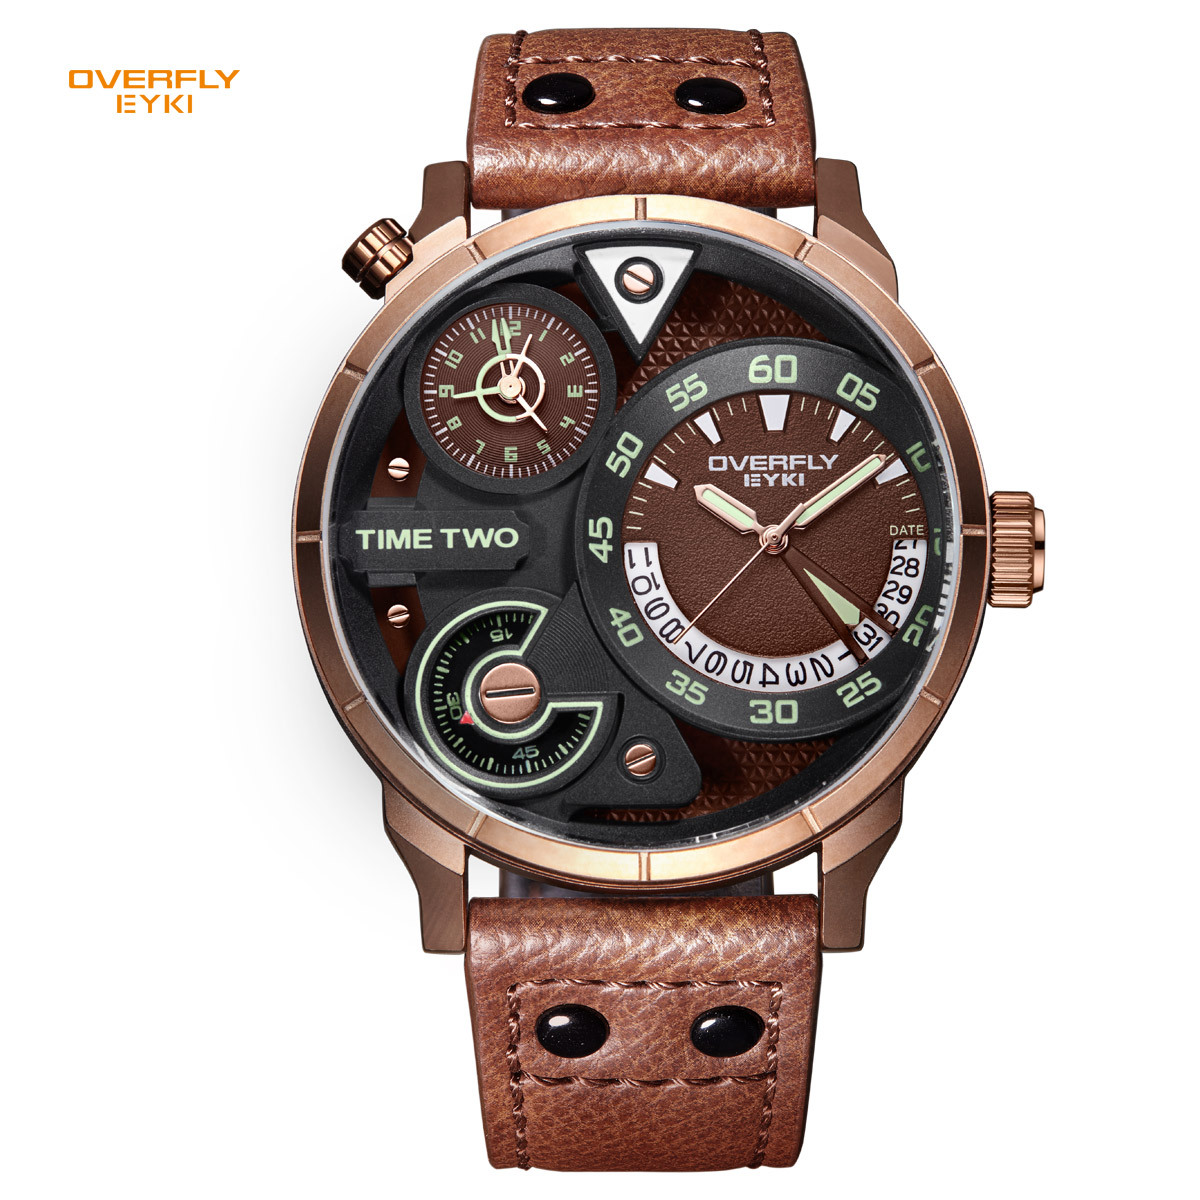 EYKI Brand Men Watches Big Dial Two Time Zone Quartz Watch Male Genuine Leather Waterproof Military Sports Clock Relogio Hombre waterproof weide brand military watch big round dial analog two time zones display leather strap men army sports waches relogio